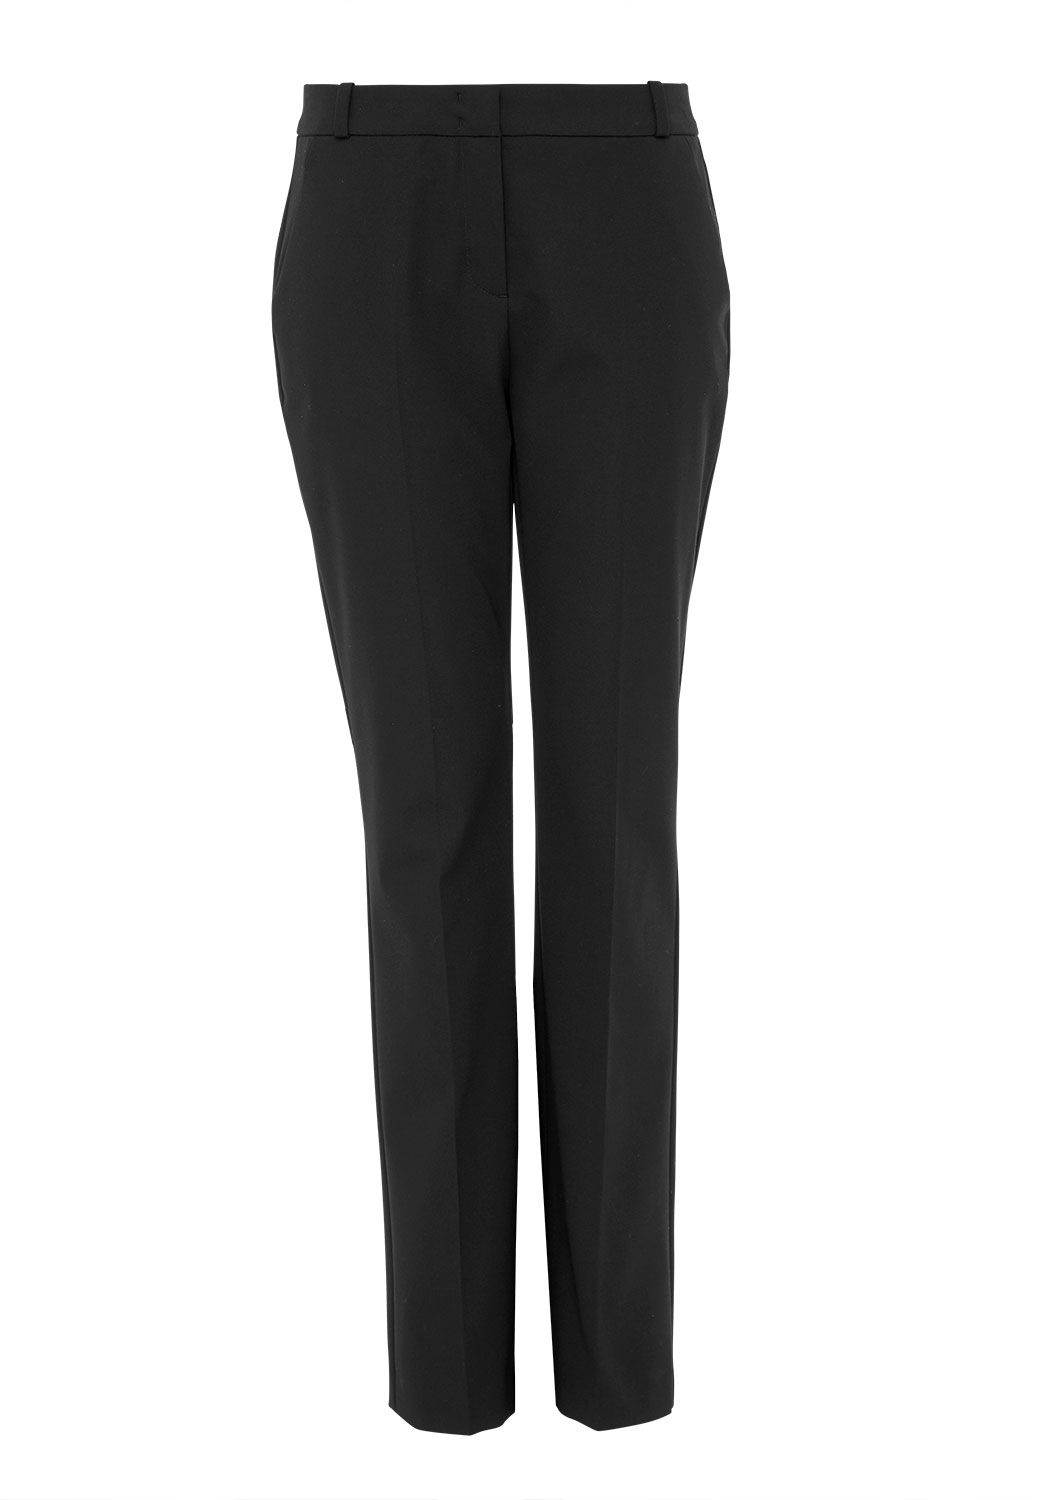 Hallhuber Centre Crease Business Trousers, Black